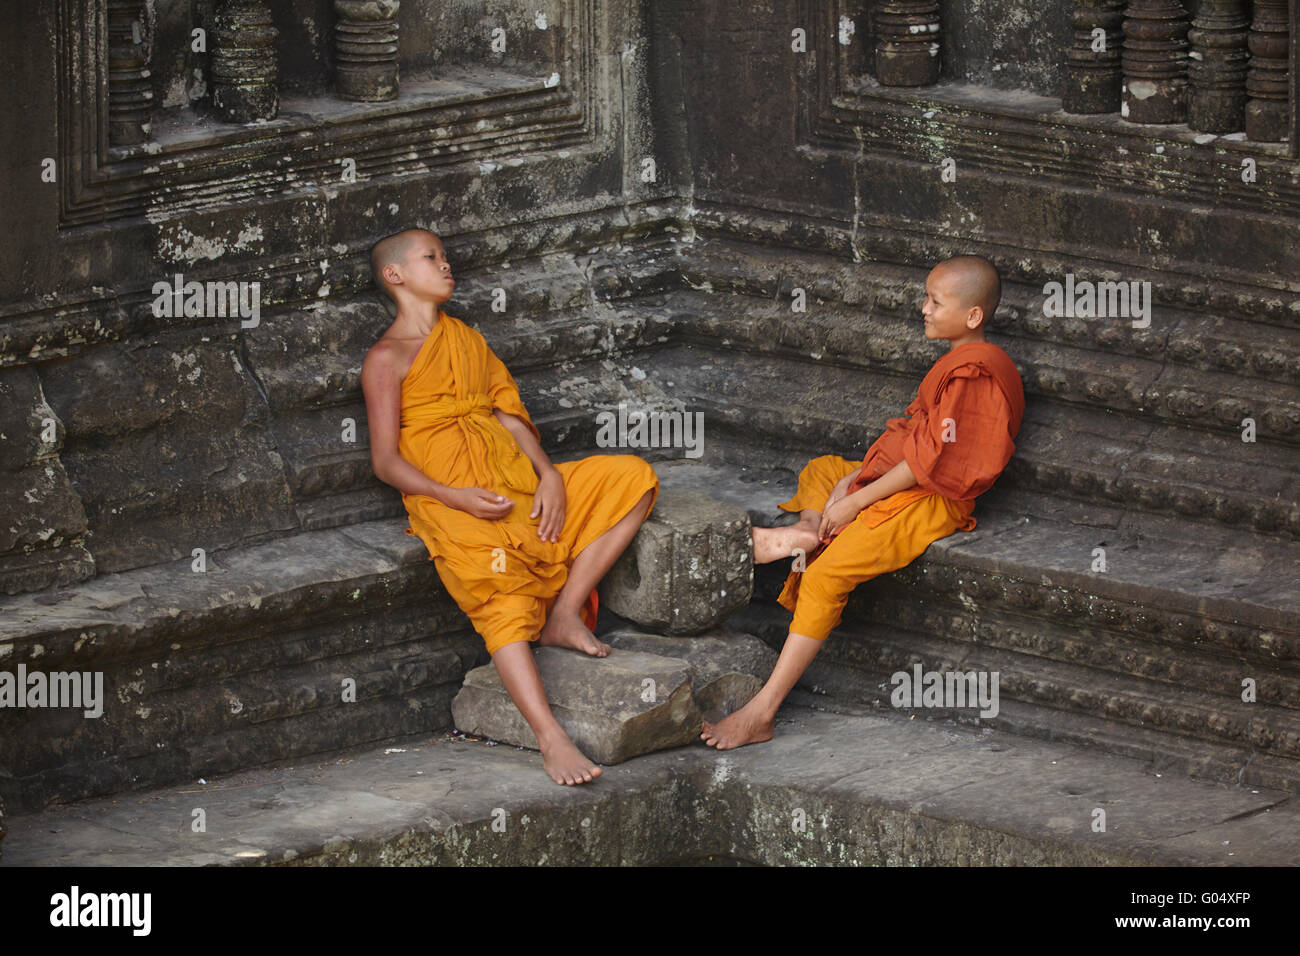 Young Buddhist monks at Angkor Wat (12th century Khmer temple), Angkor World Heritage Site, Siem Reap, Cambodia - Stock Image